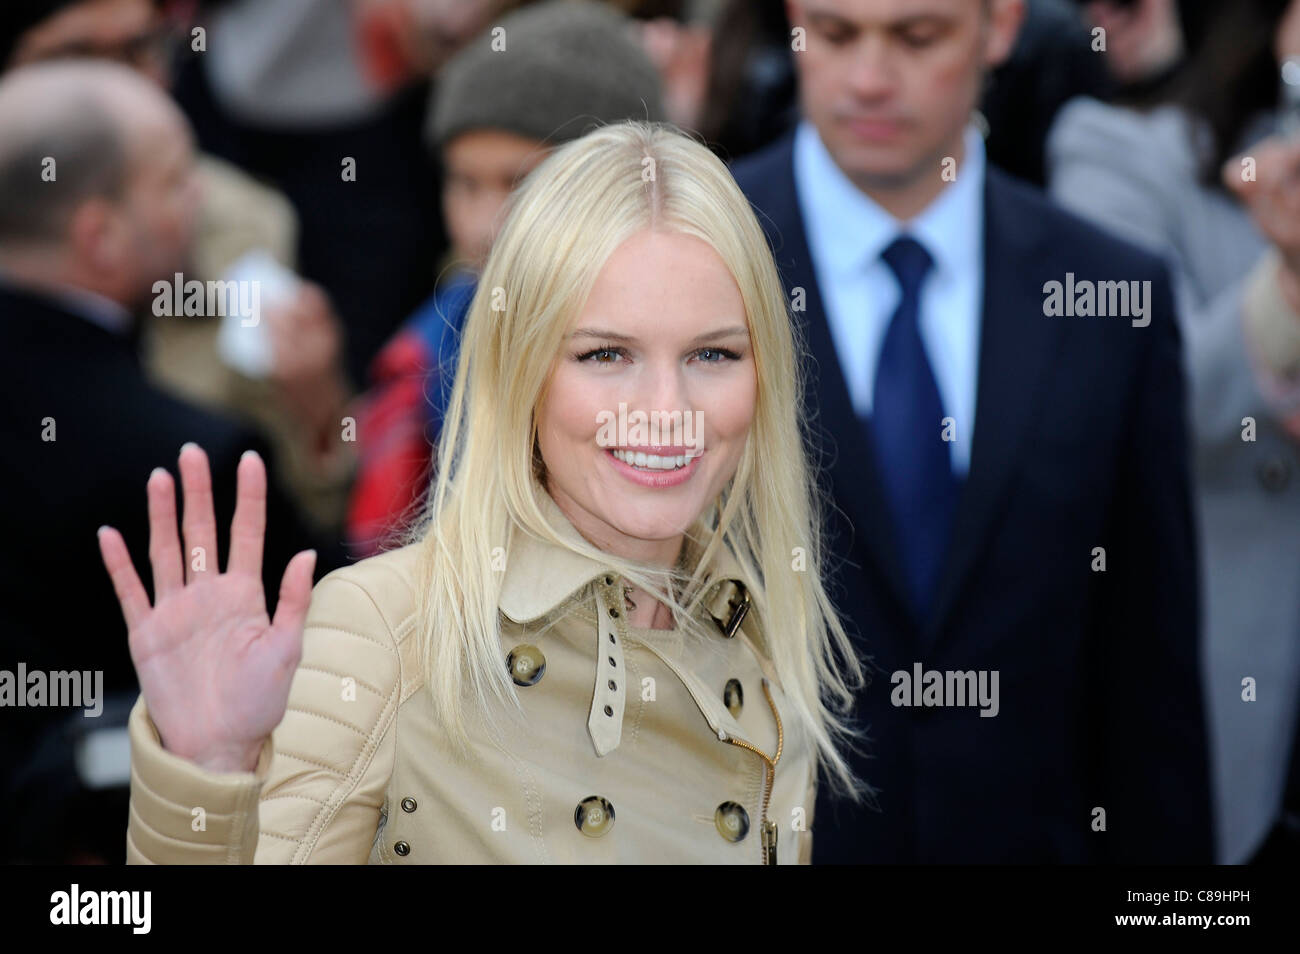 Kate Bosworth 2011 - Image Copyright Celebrity Spotlight 2011 - Stock Image